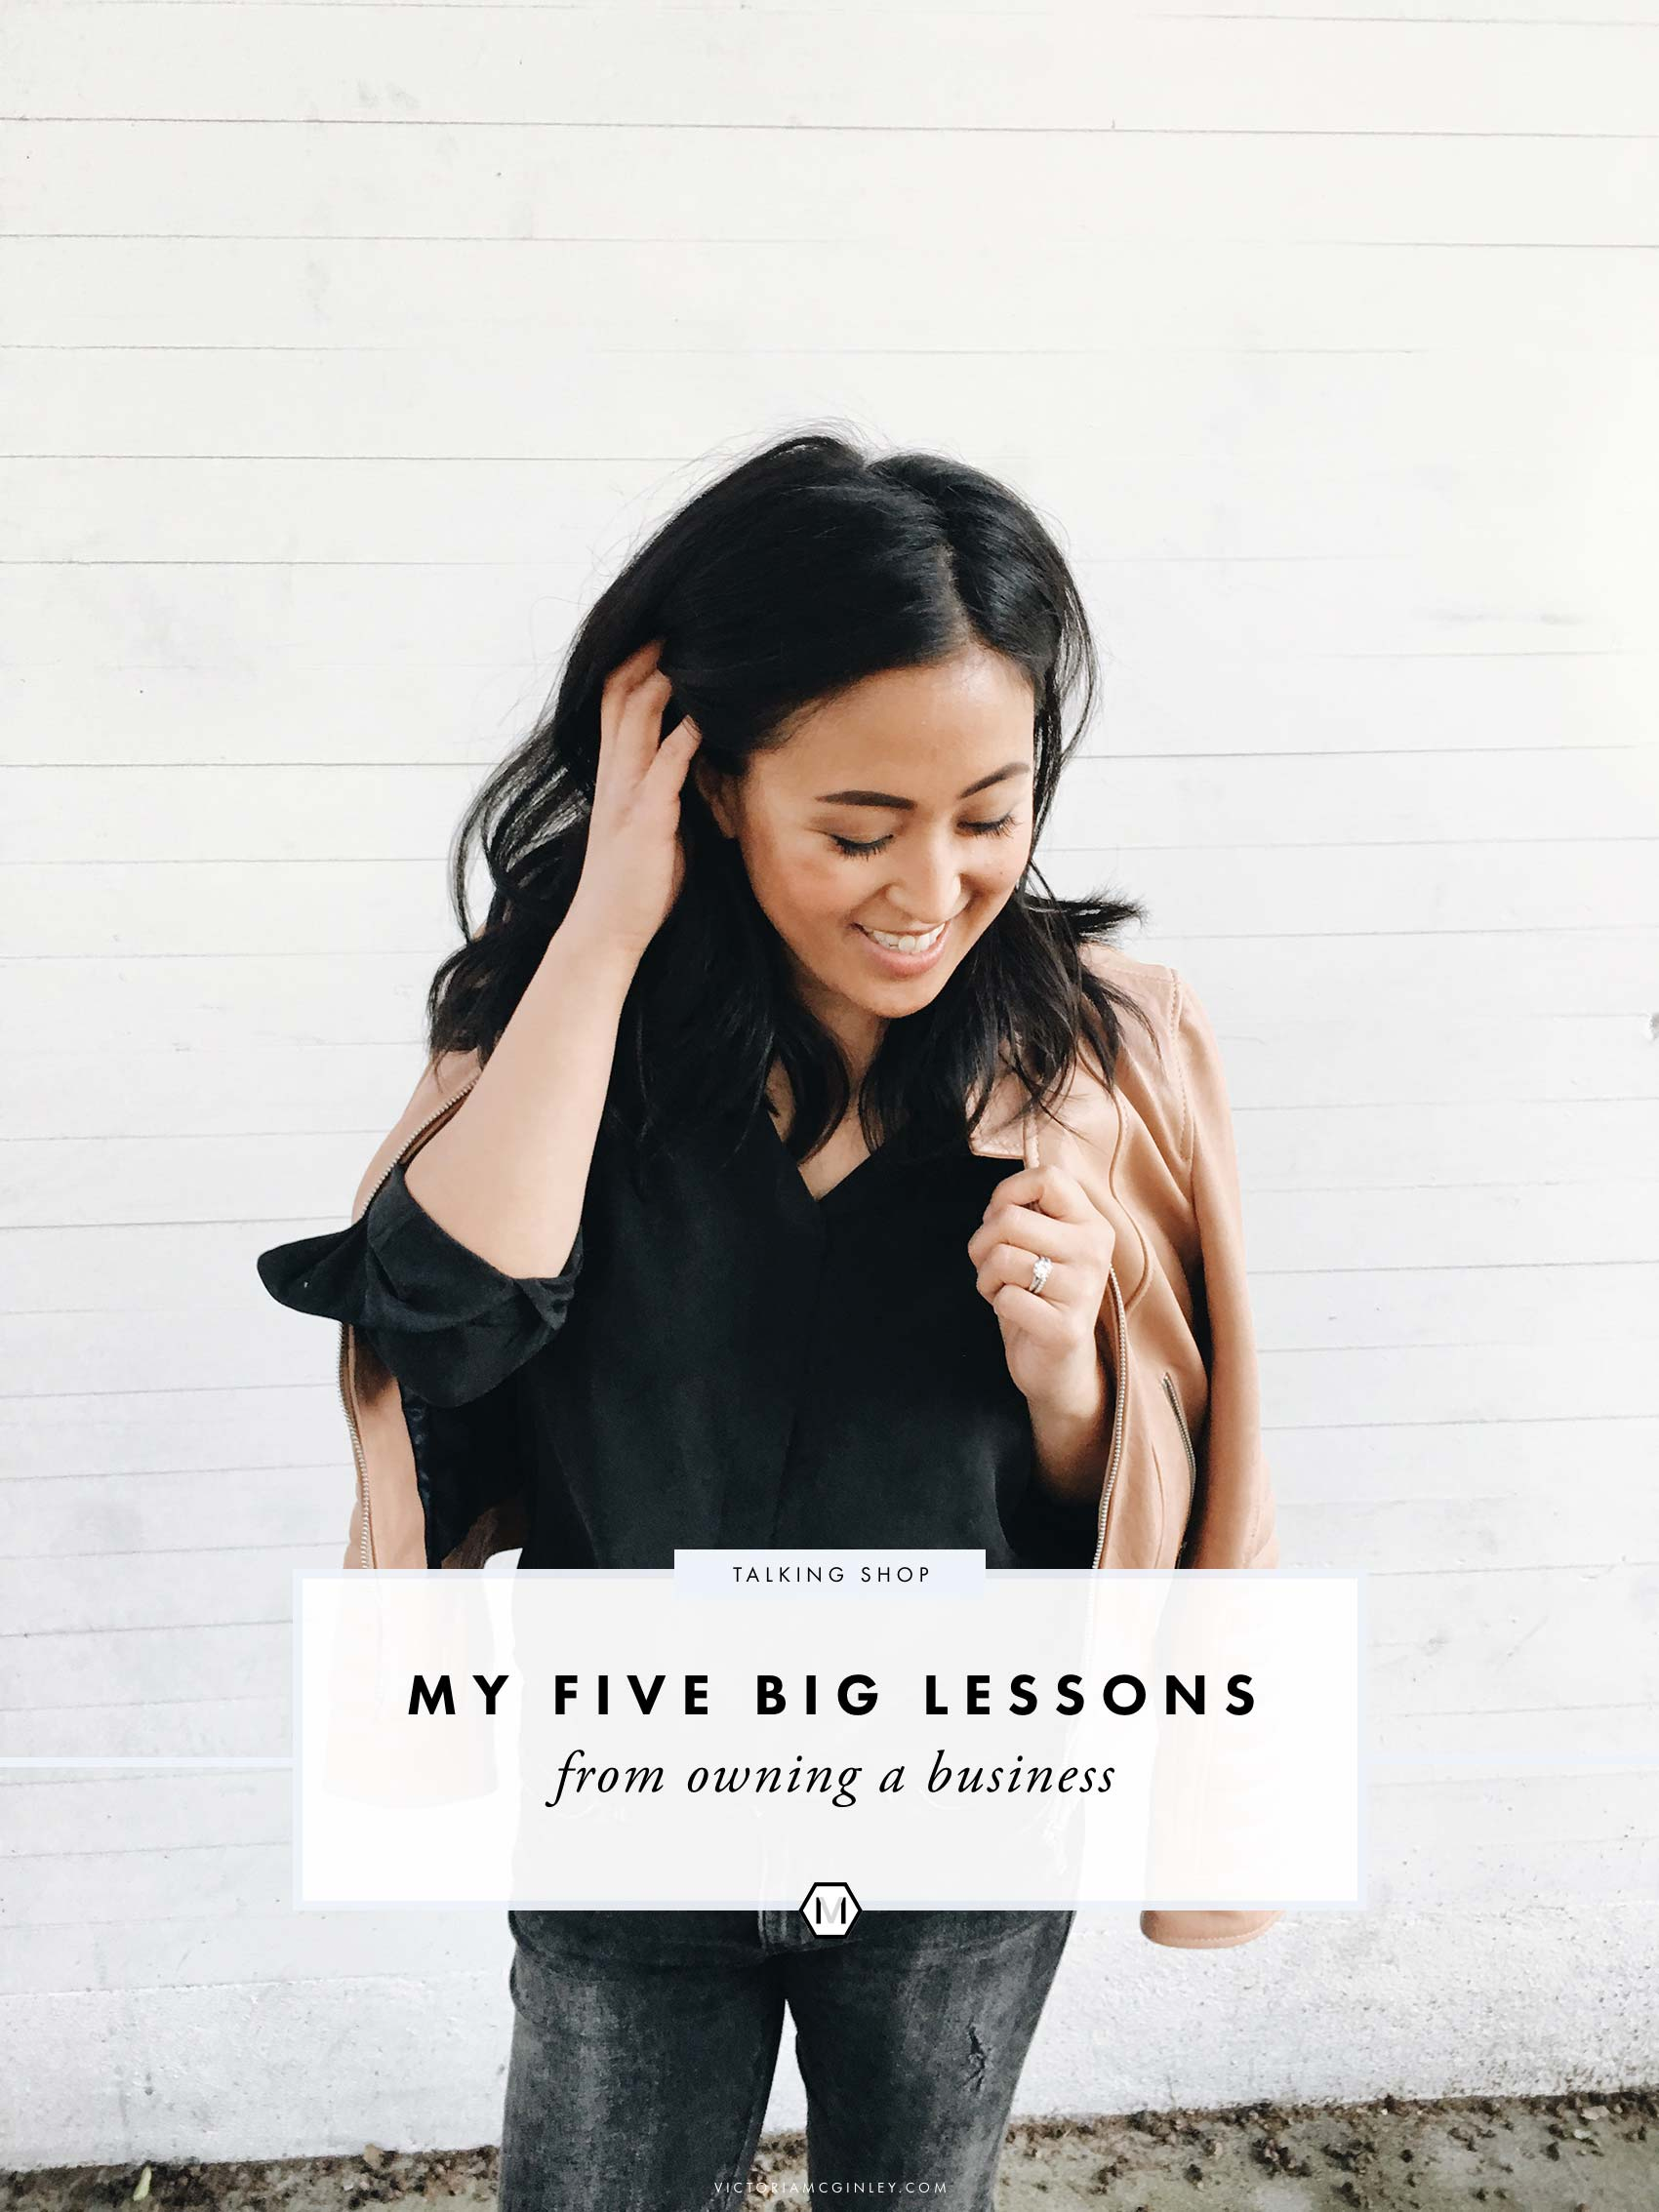 Five biggest lessons from owning a small business